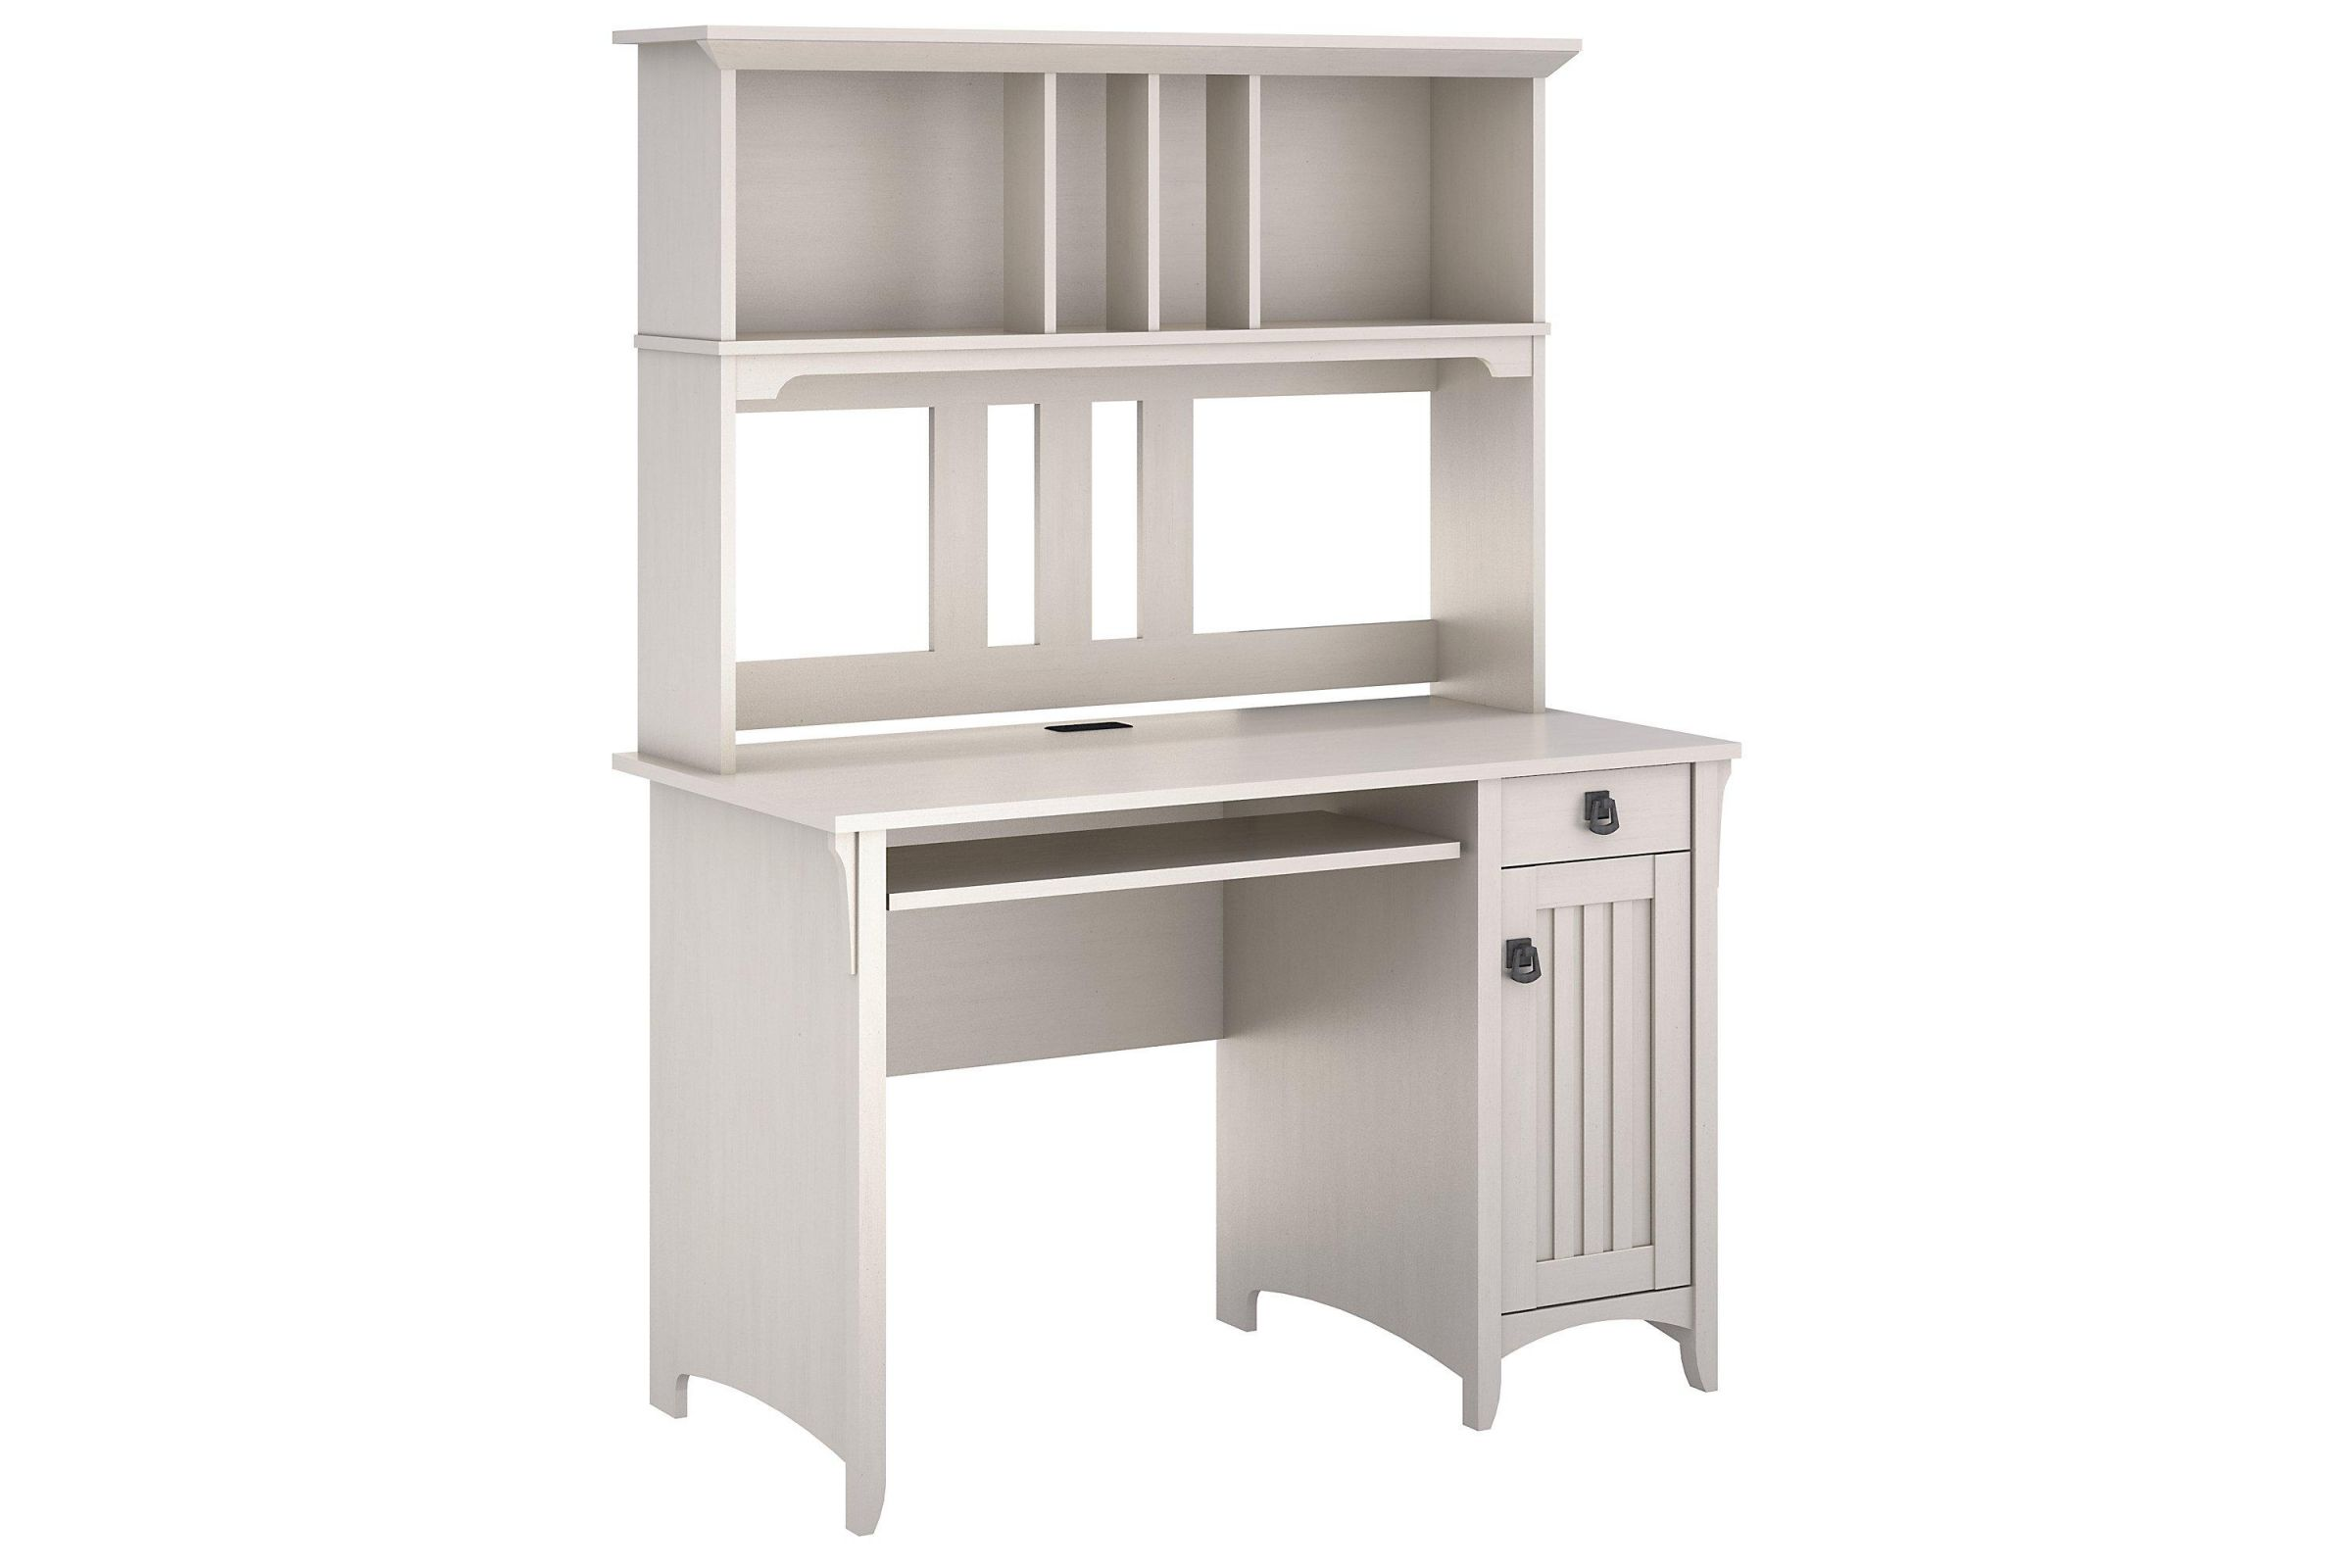 Salinas Mission Style Desk With Hutch In Antique White By Bush